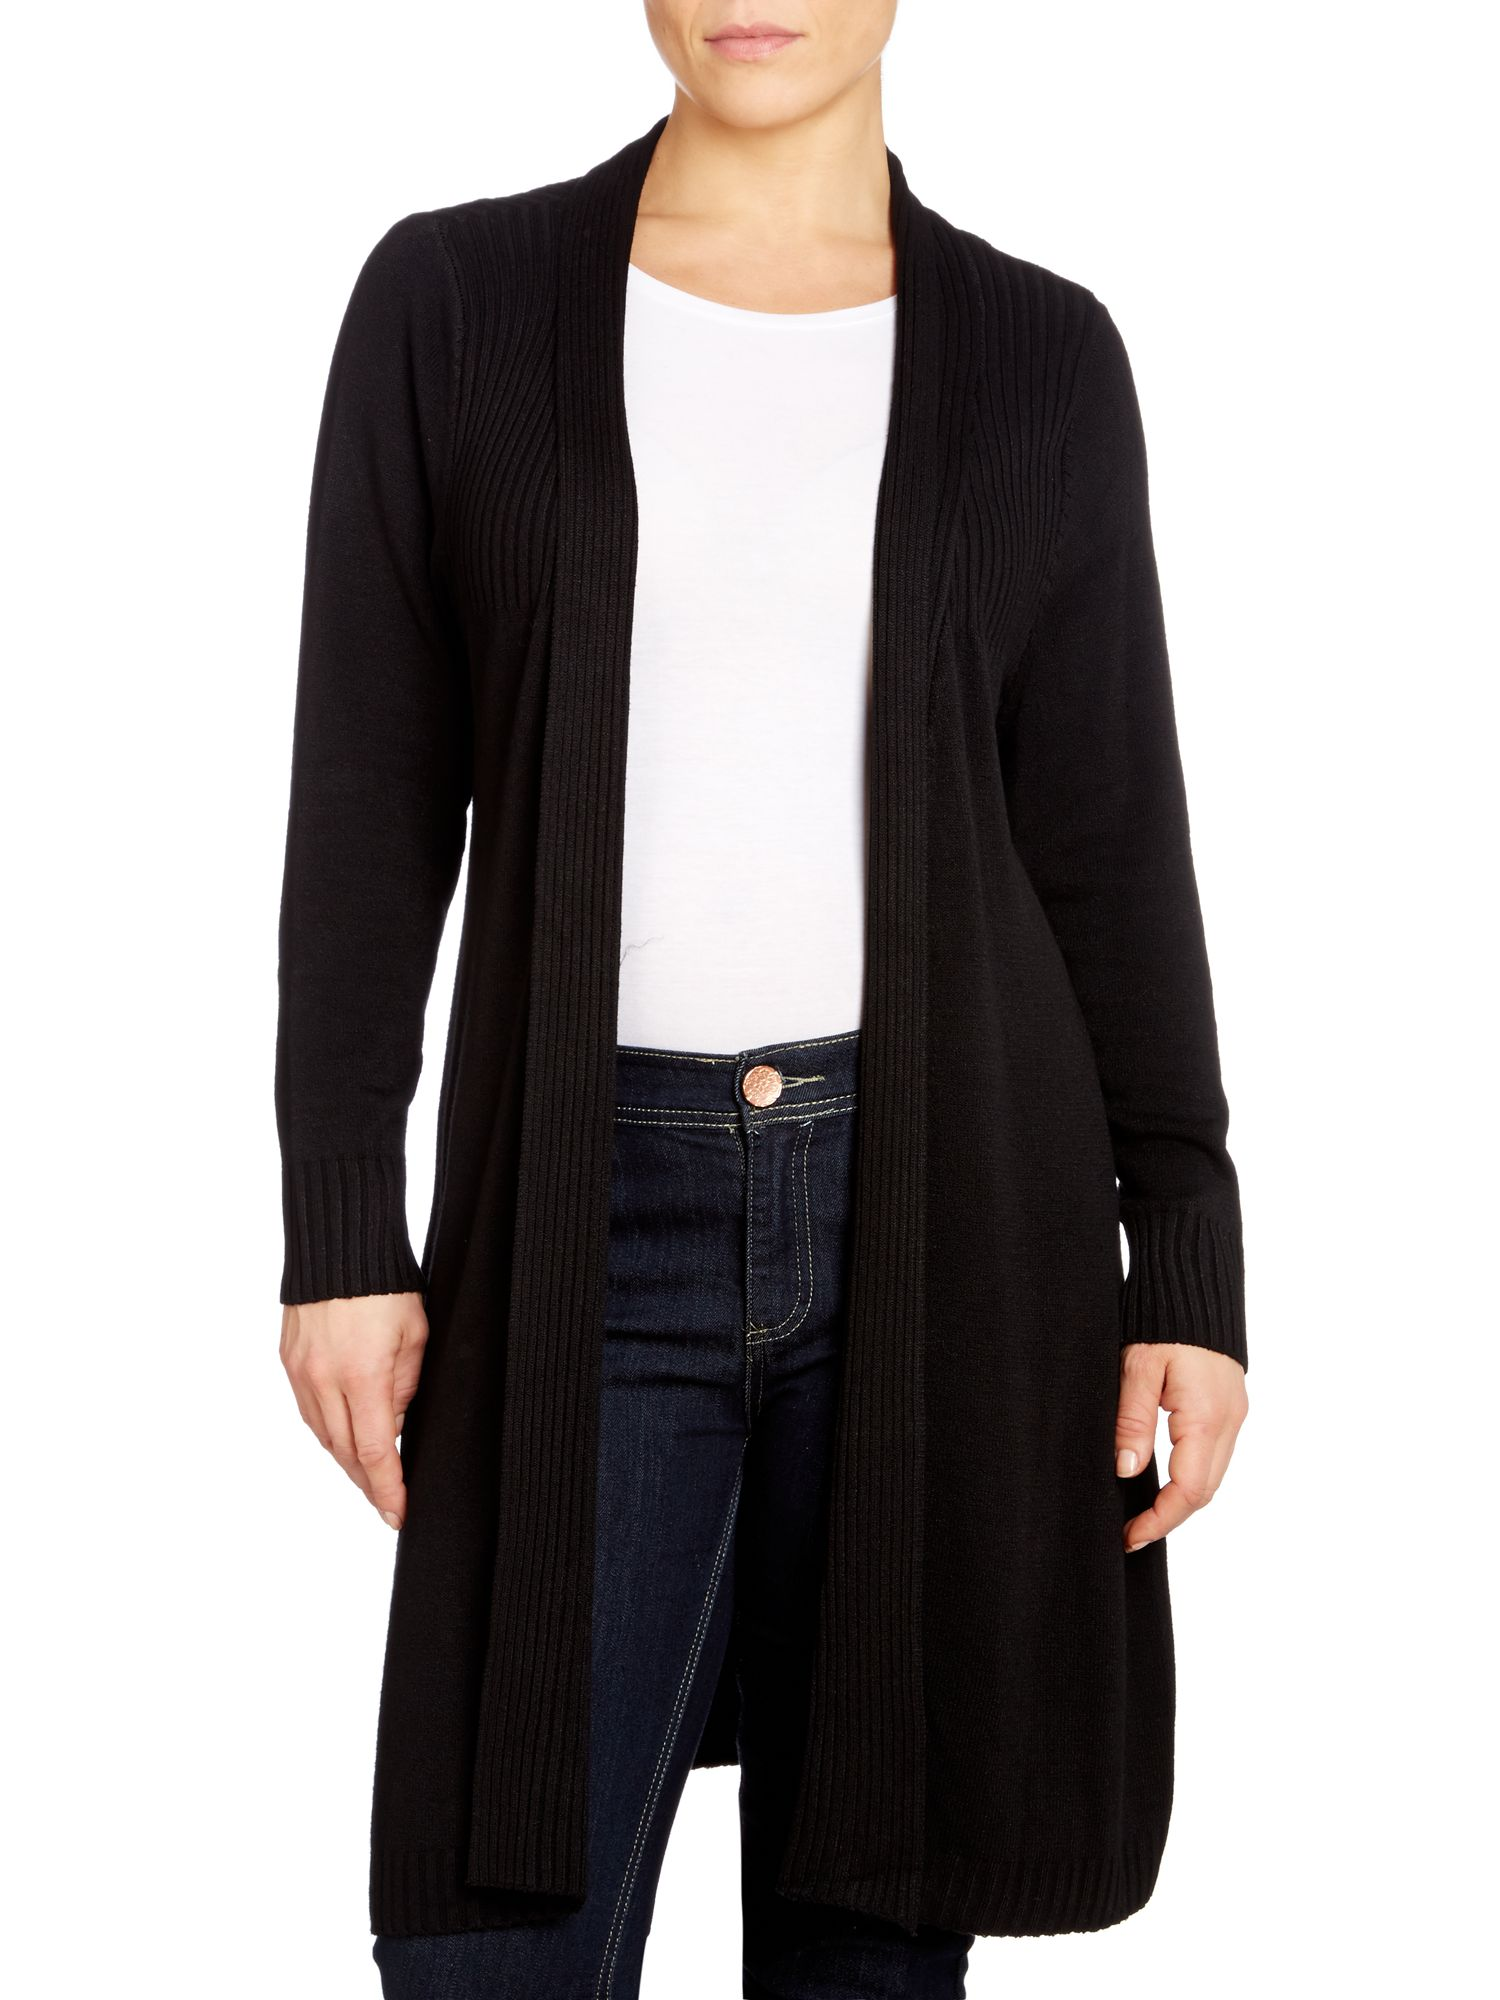 Rib knit long cardigan